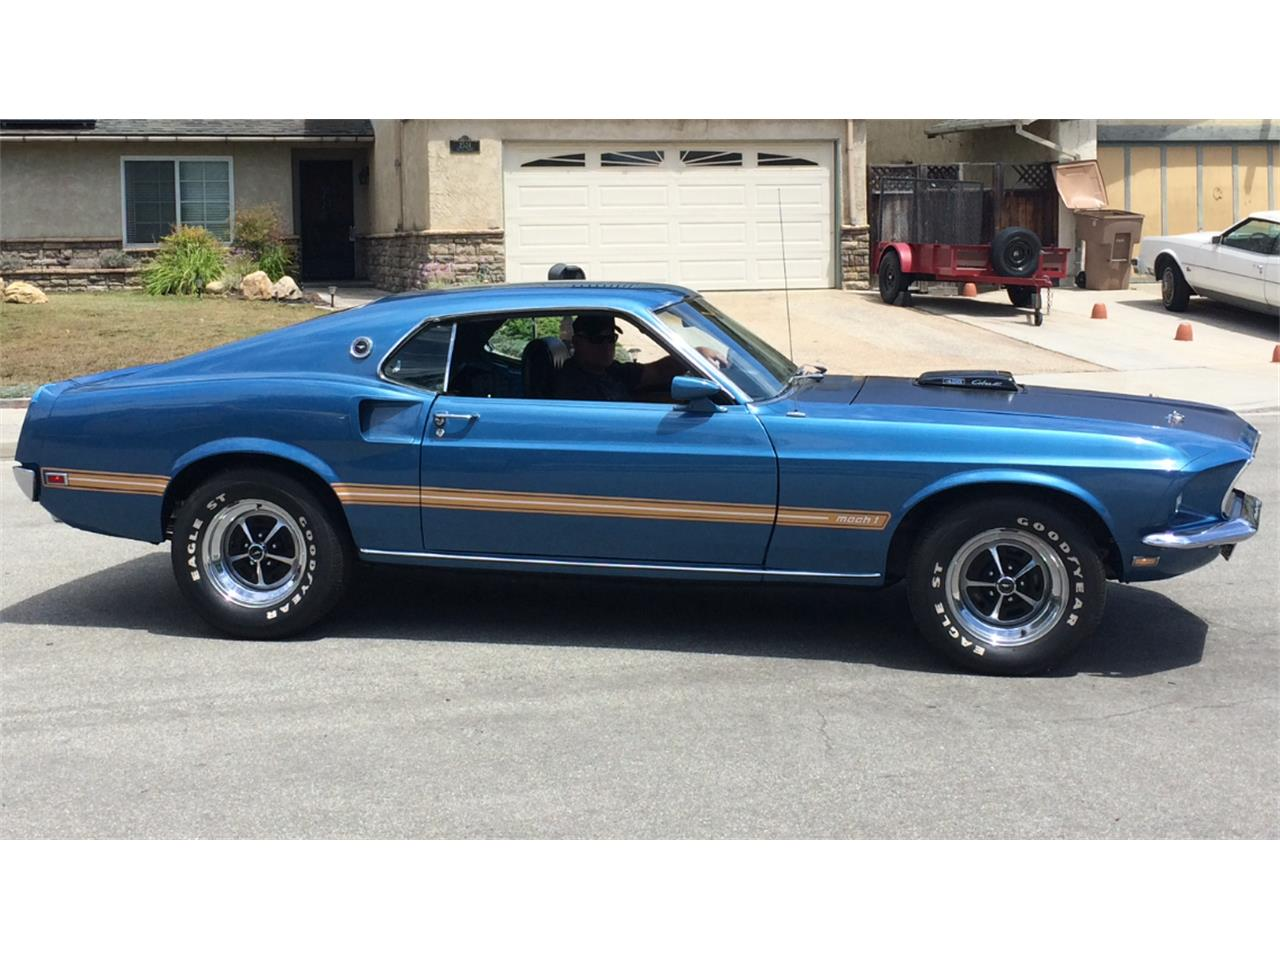 Large picture of 69 mustang mach 1 izli